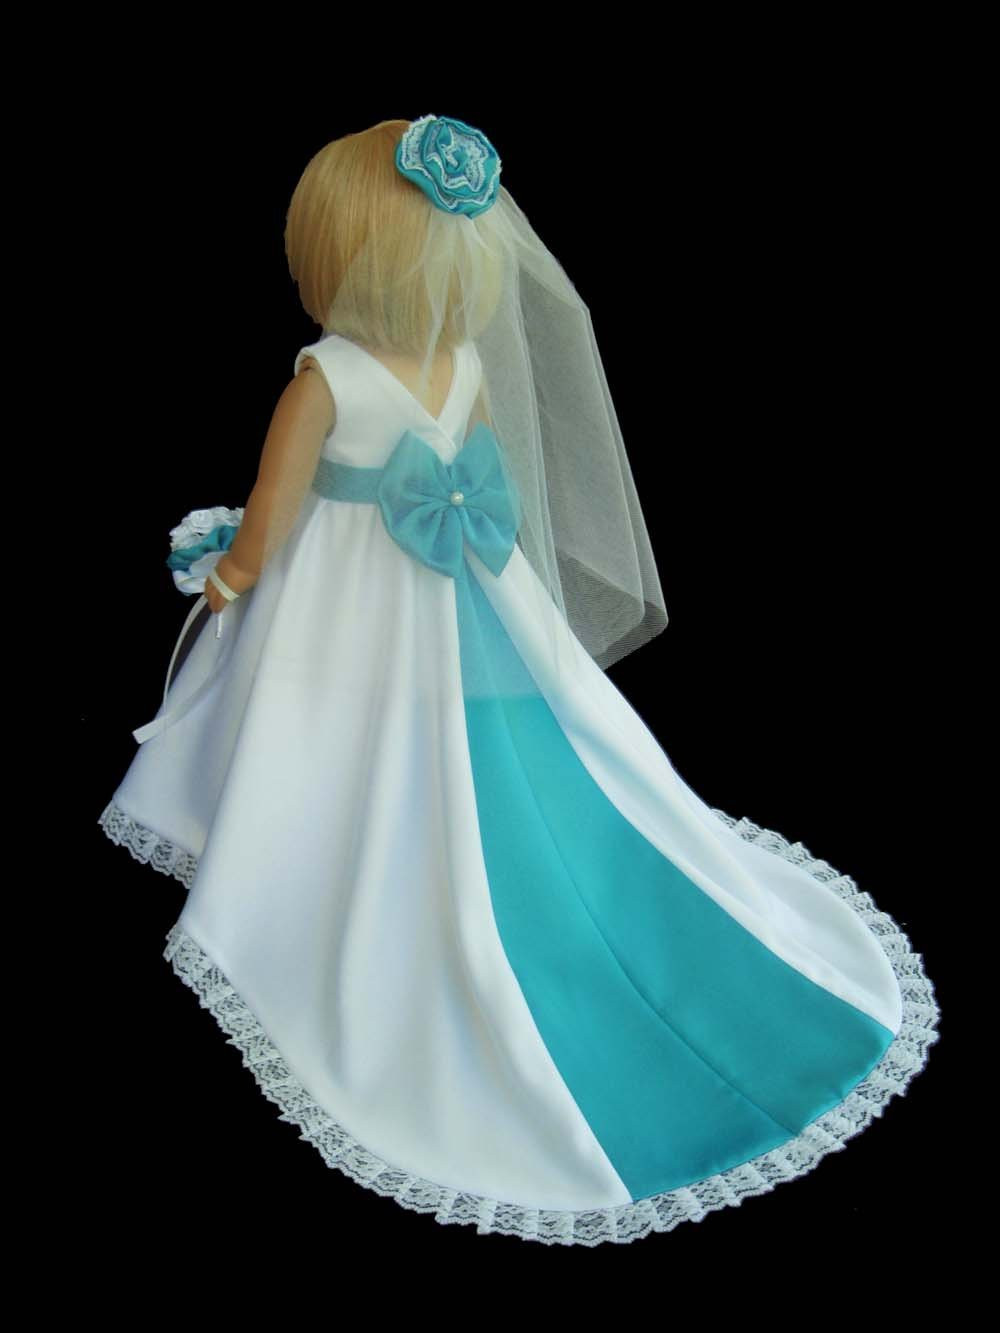 Best Of 301 Moved Permanently American Girl Doll Wedding Dress Of Beautiful American Girl Doll Wedding Dress Satin and Silver American Girl Doll Wedding Dress